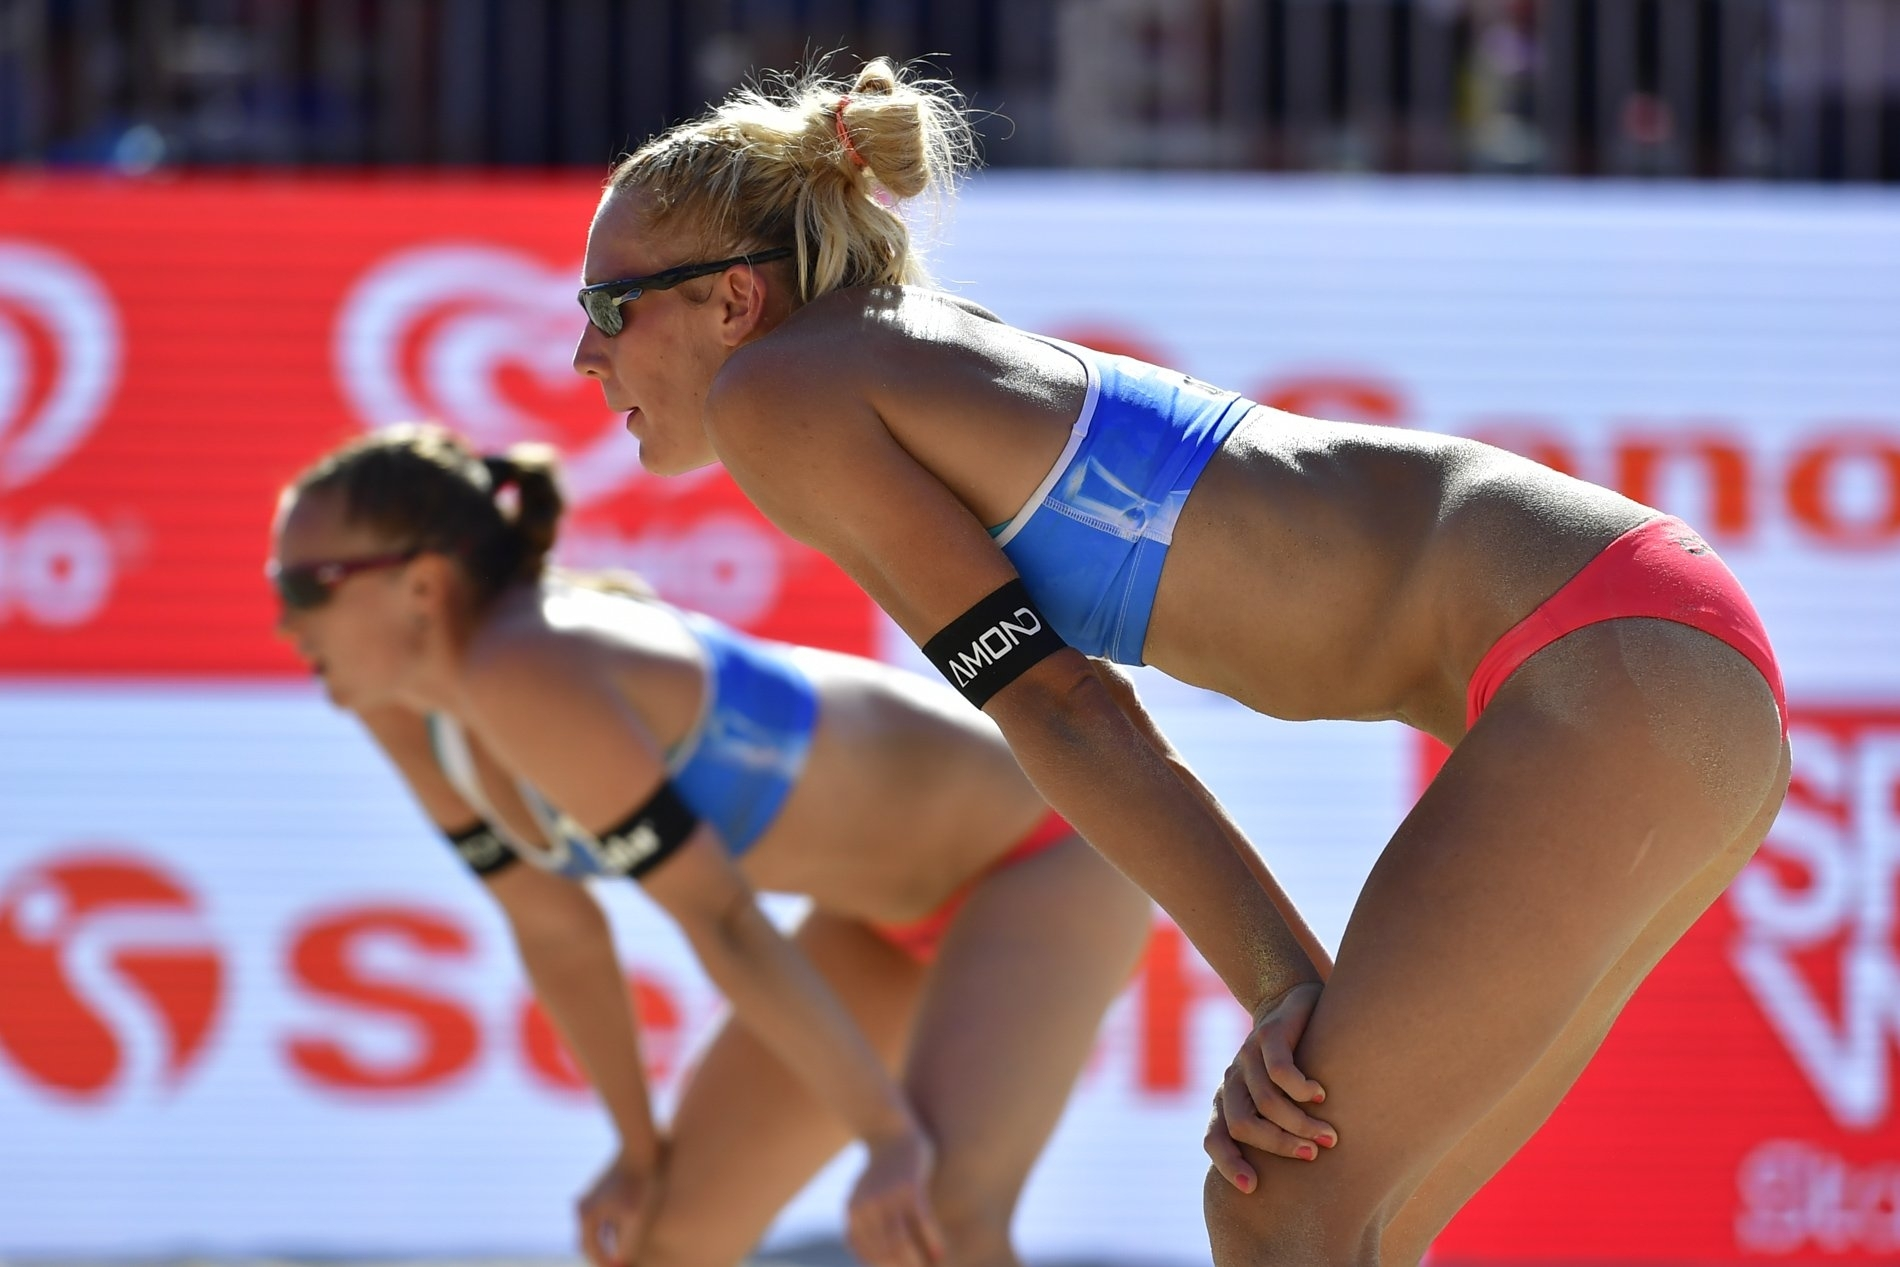 Kristyna and Michala in action during their appearance at the World Championships